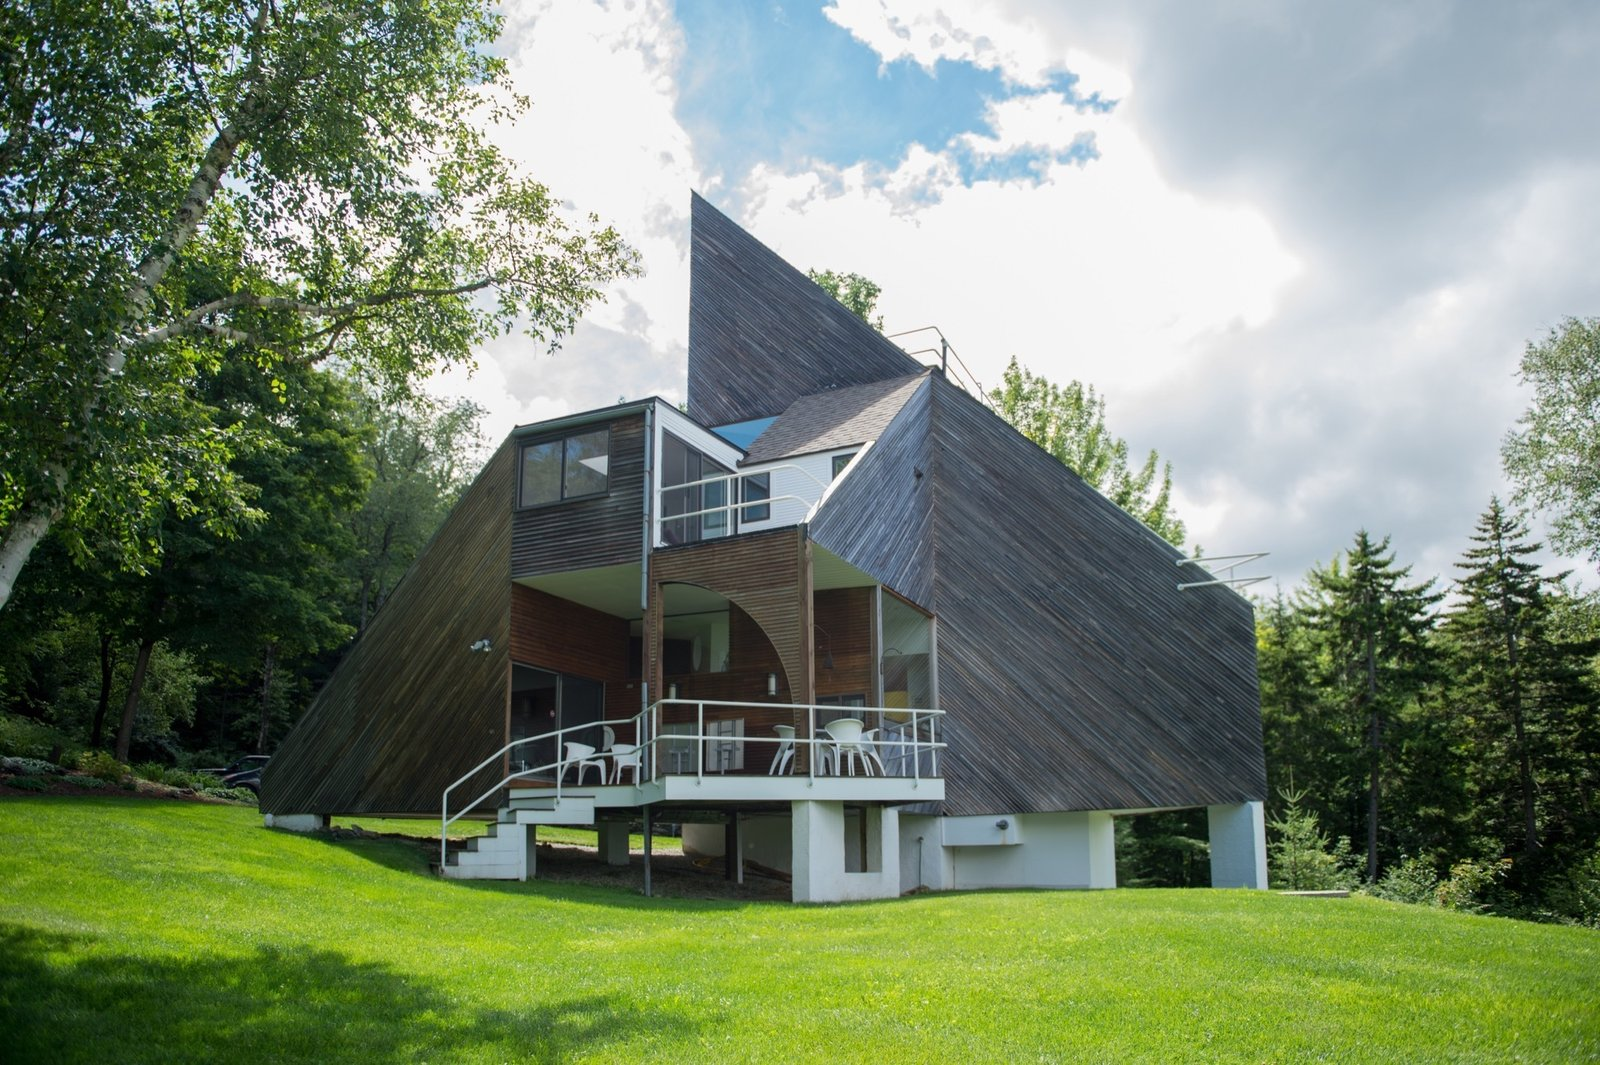 Sellers's Pyramid House on Prickly Mountain in Vermont  Photo 2 of 11 in Architecture Improv